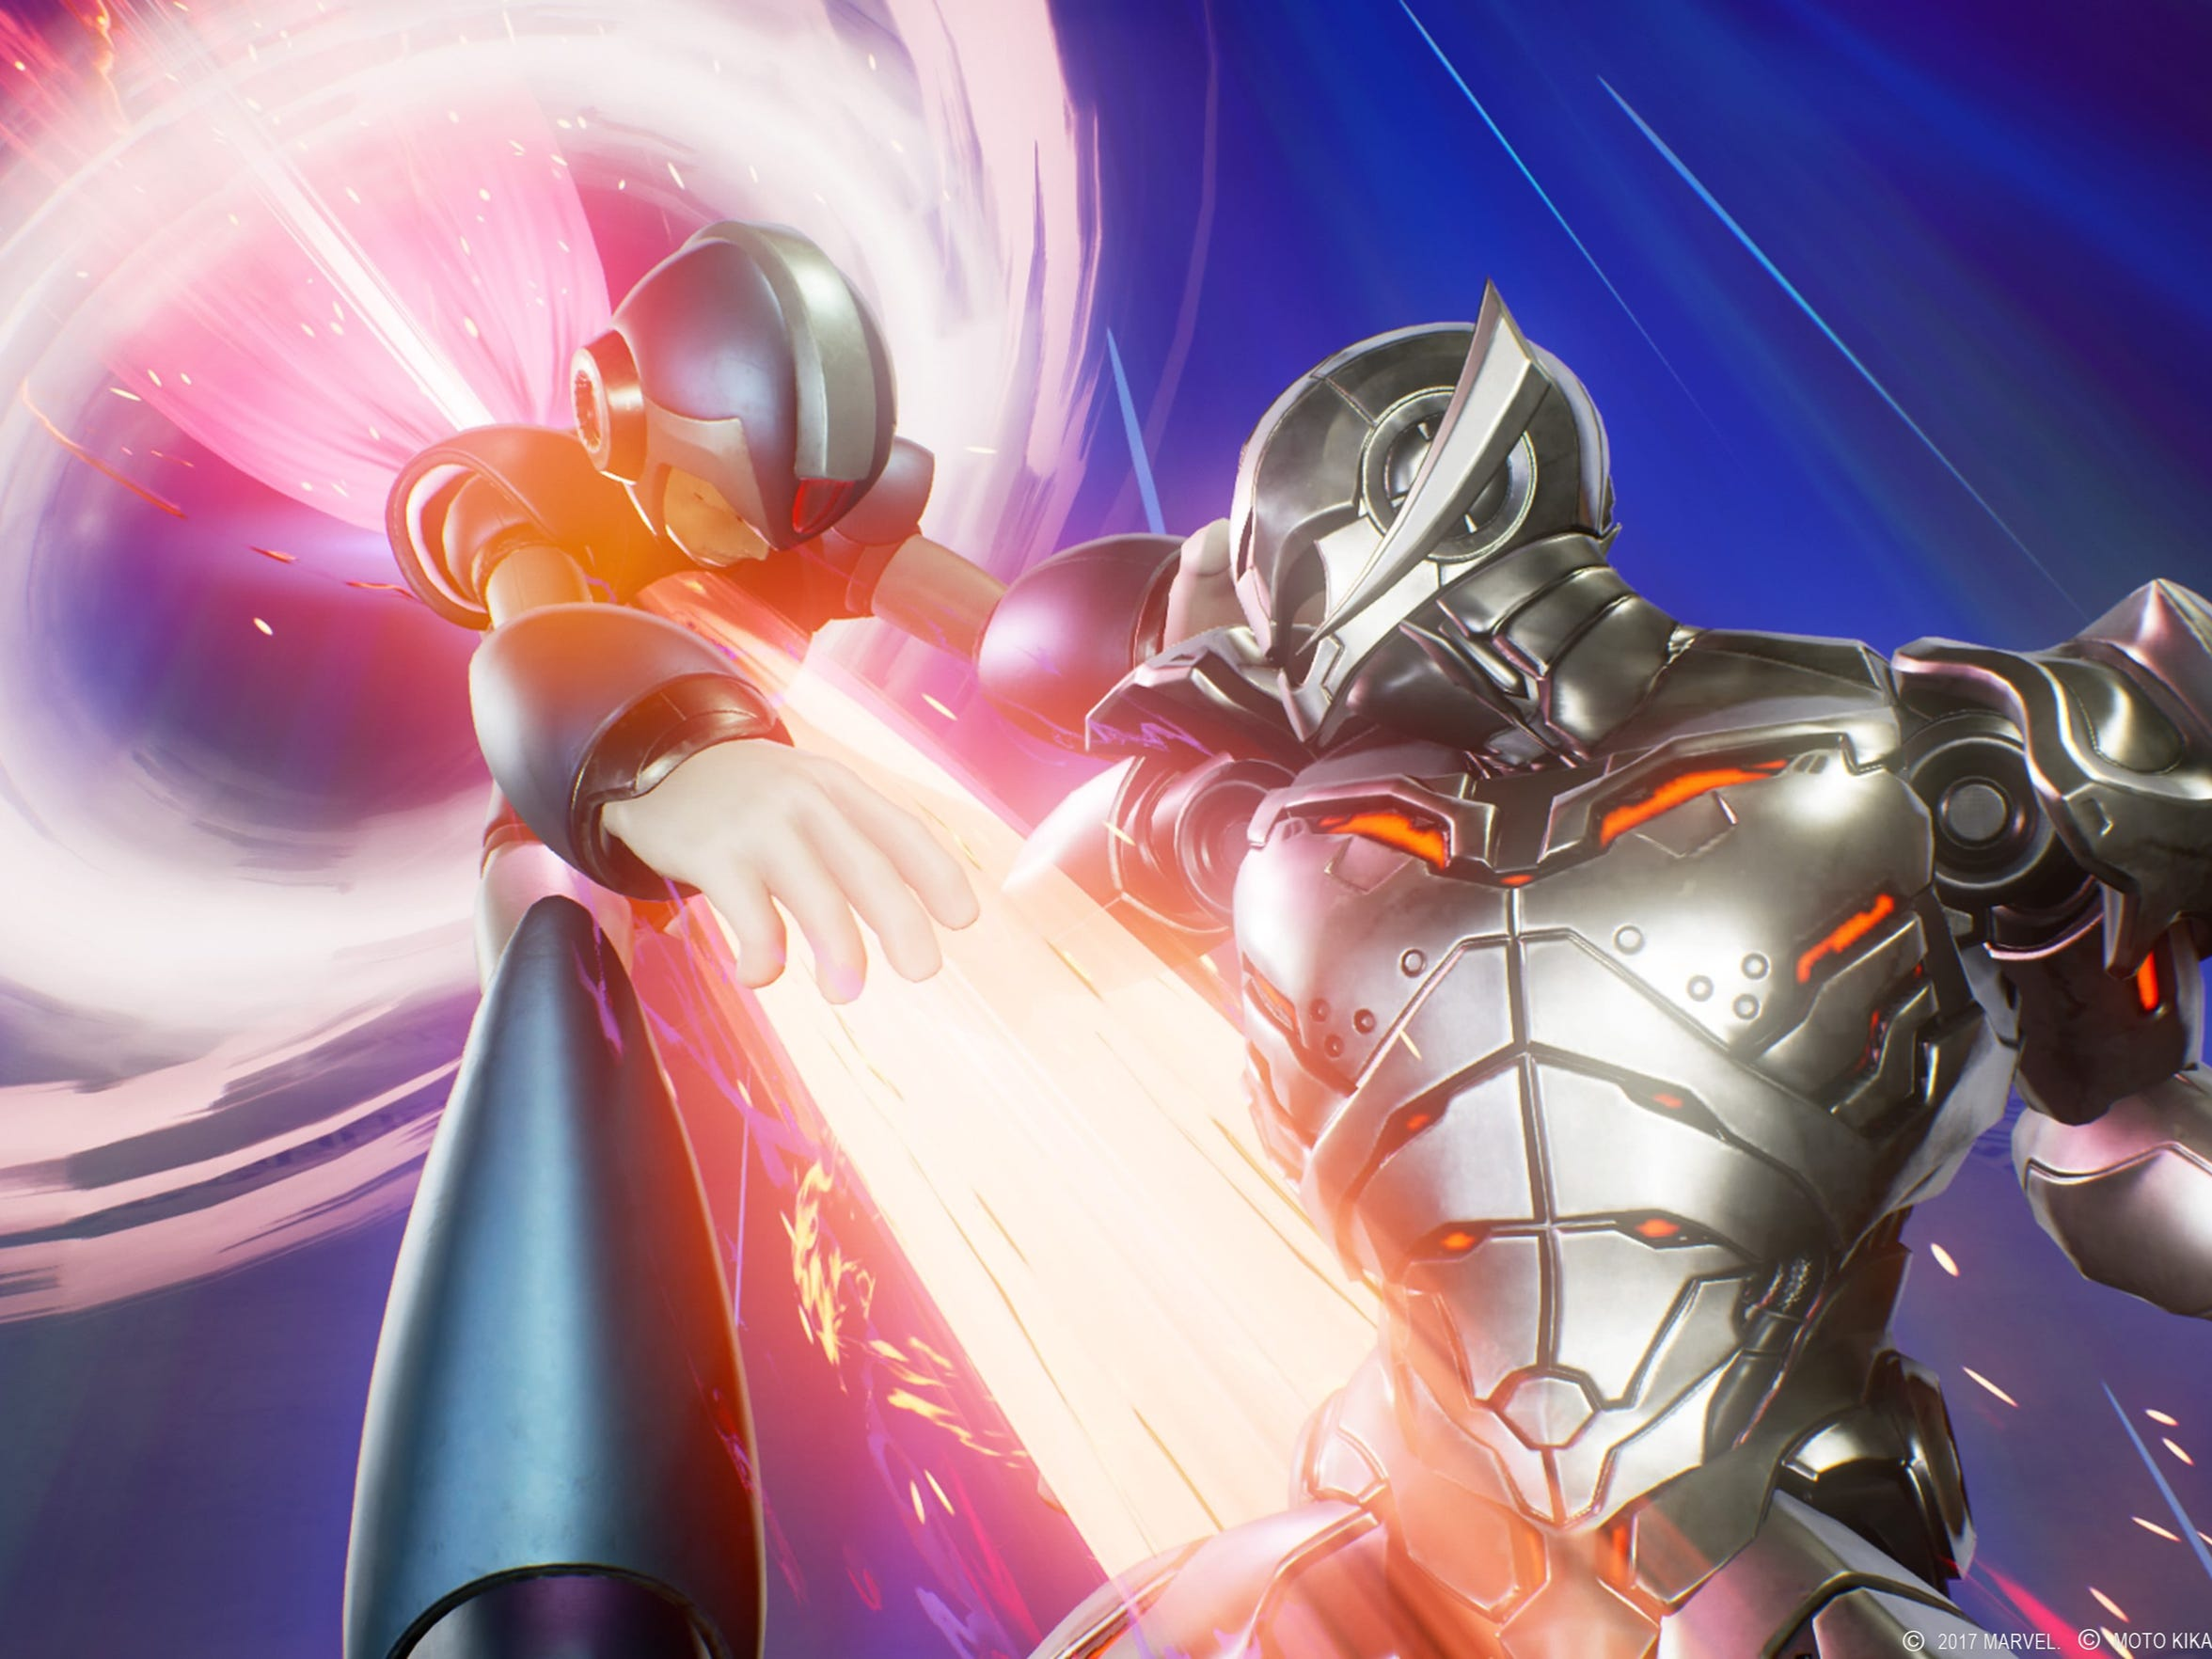 The Marvel vs. Capcom: Infinite universe continues to expand with more new additions entering the fighting game's fray.